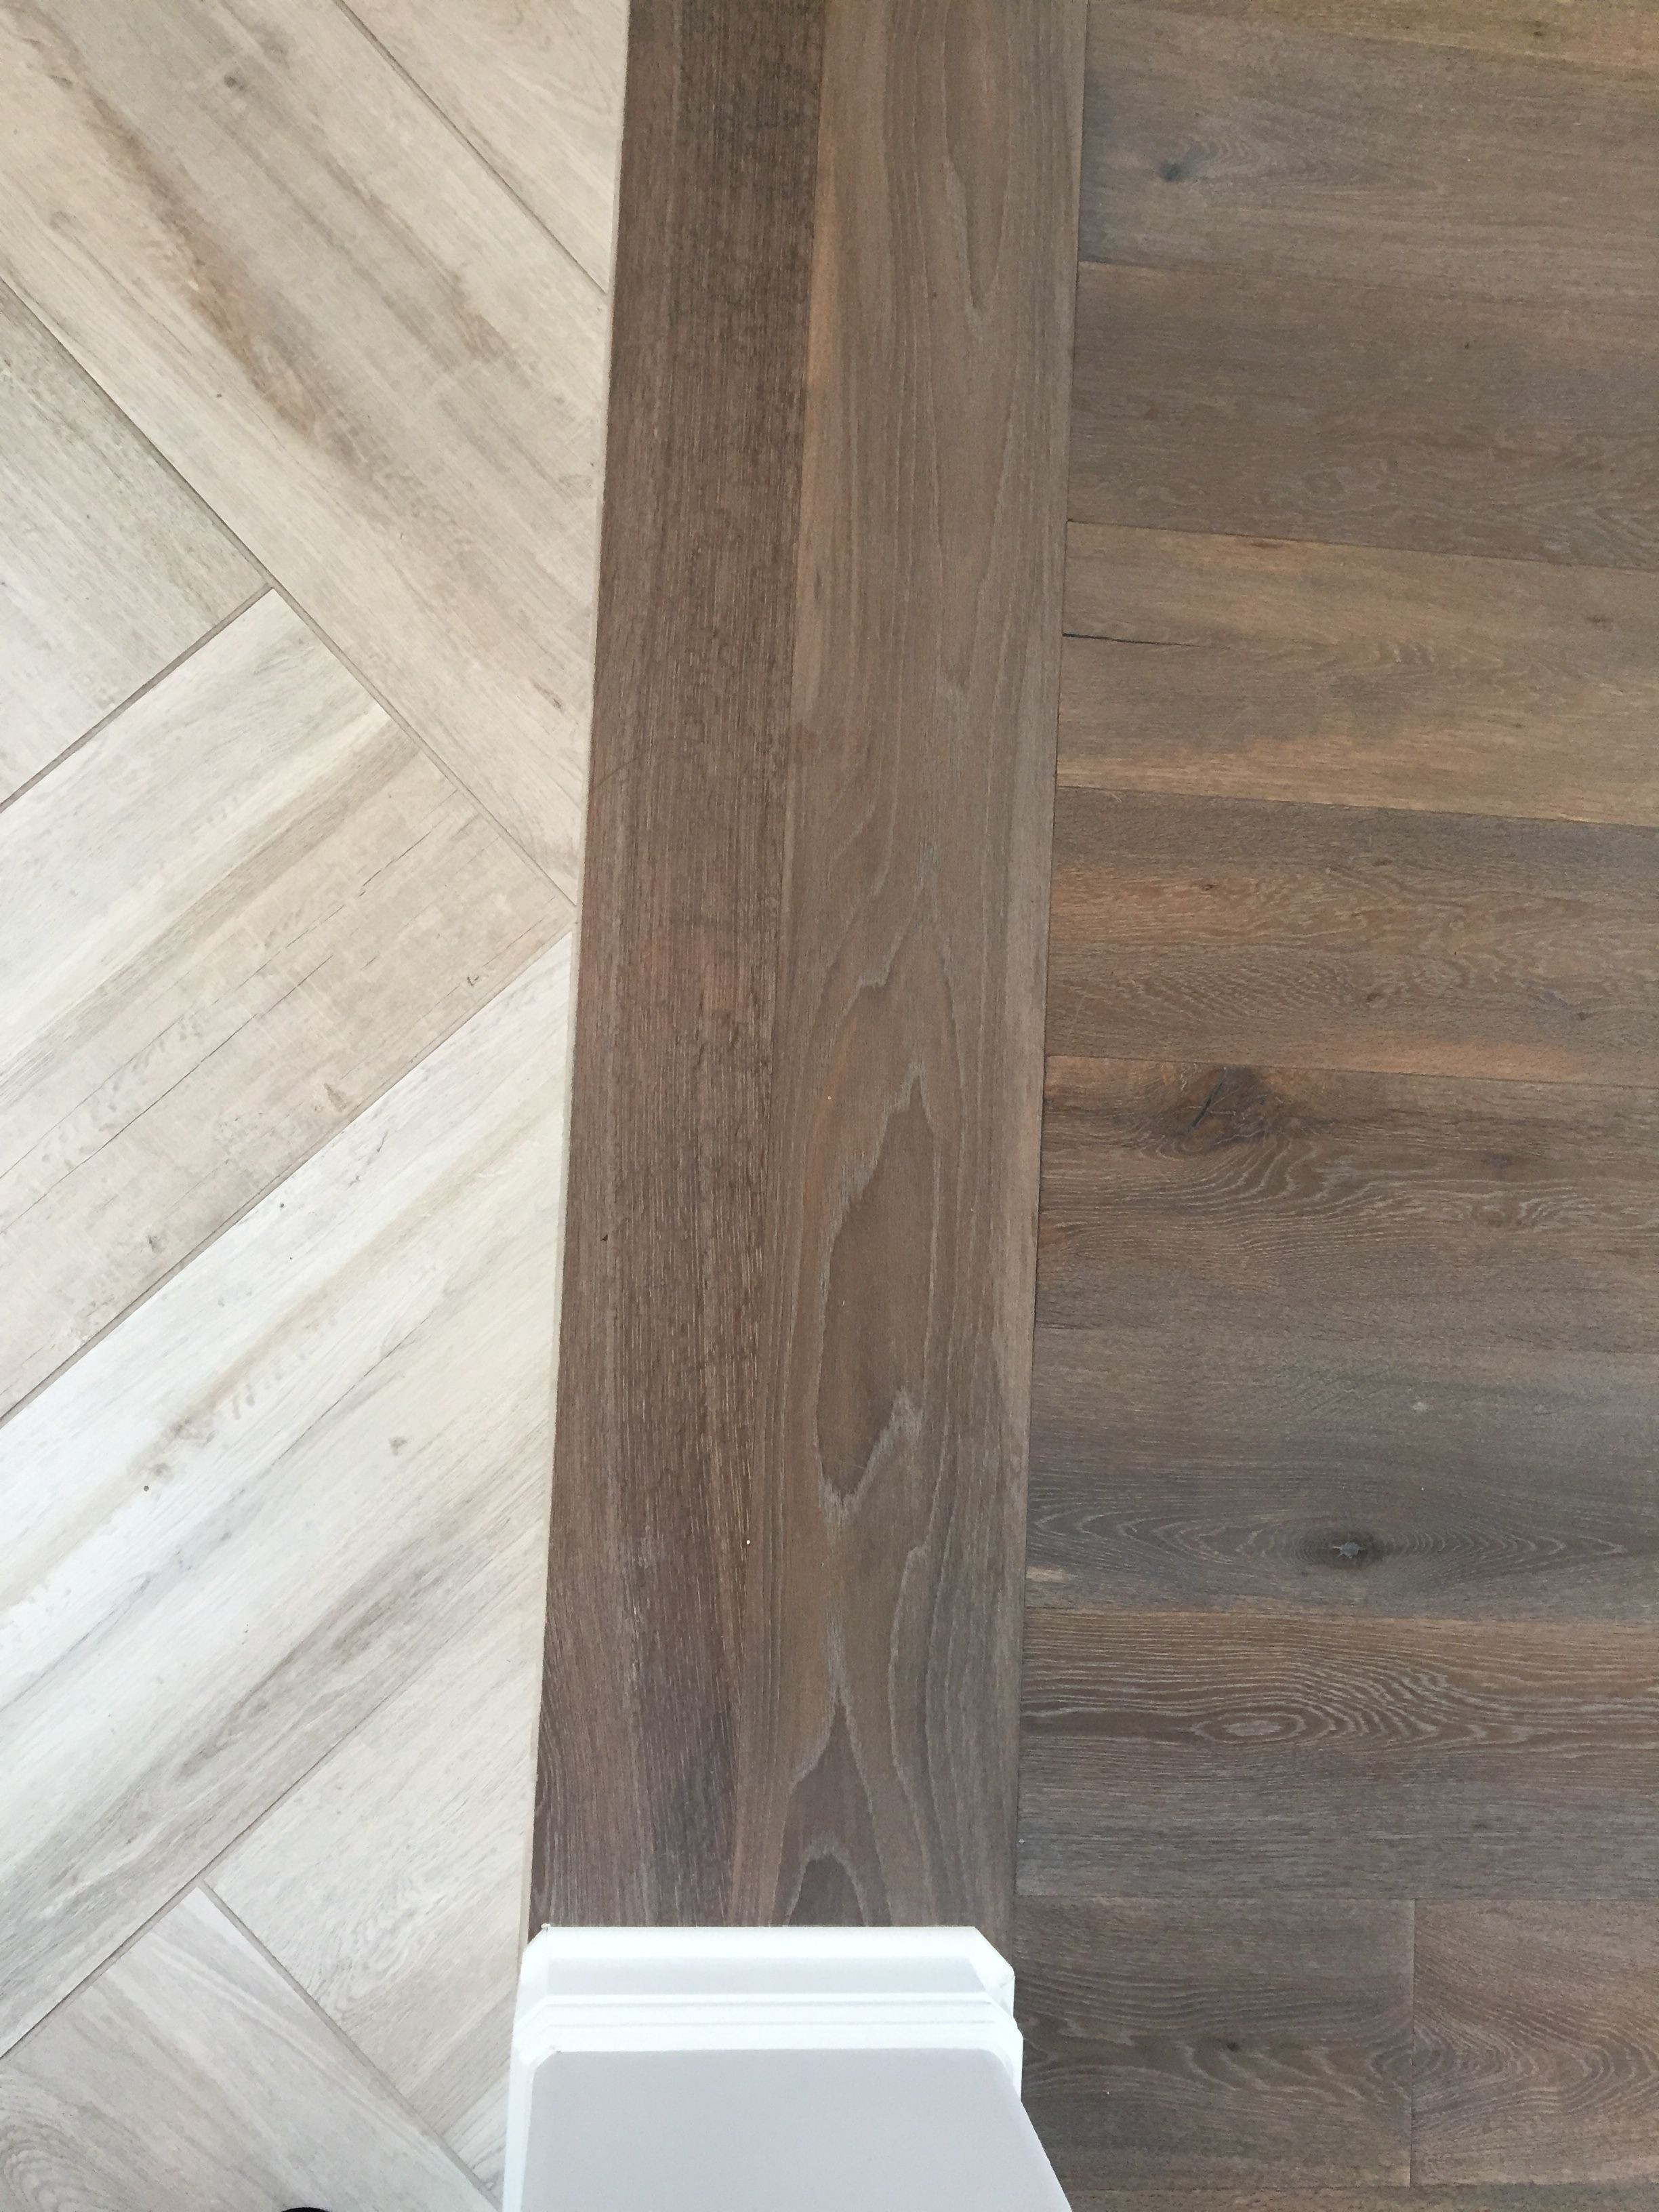 best hardwood floor color with white cabinets of floor transition laminate to herringbone tile pattern model intended for floor transition laminate to herringbone tile pattern herringbone tile pattern herringbone wood floor